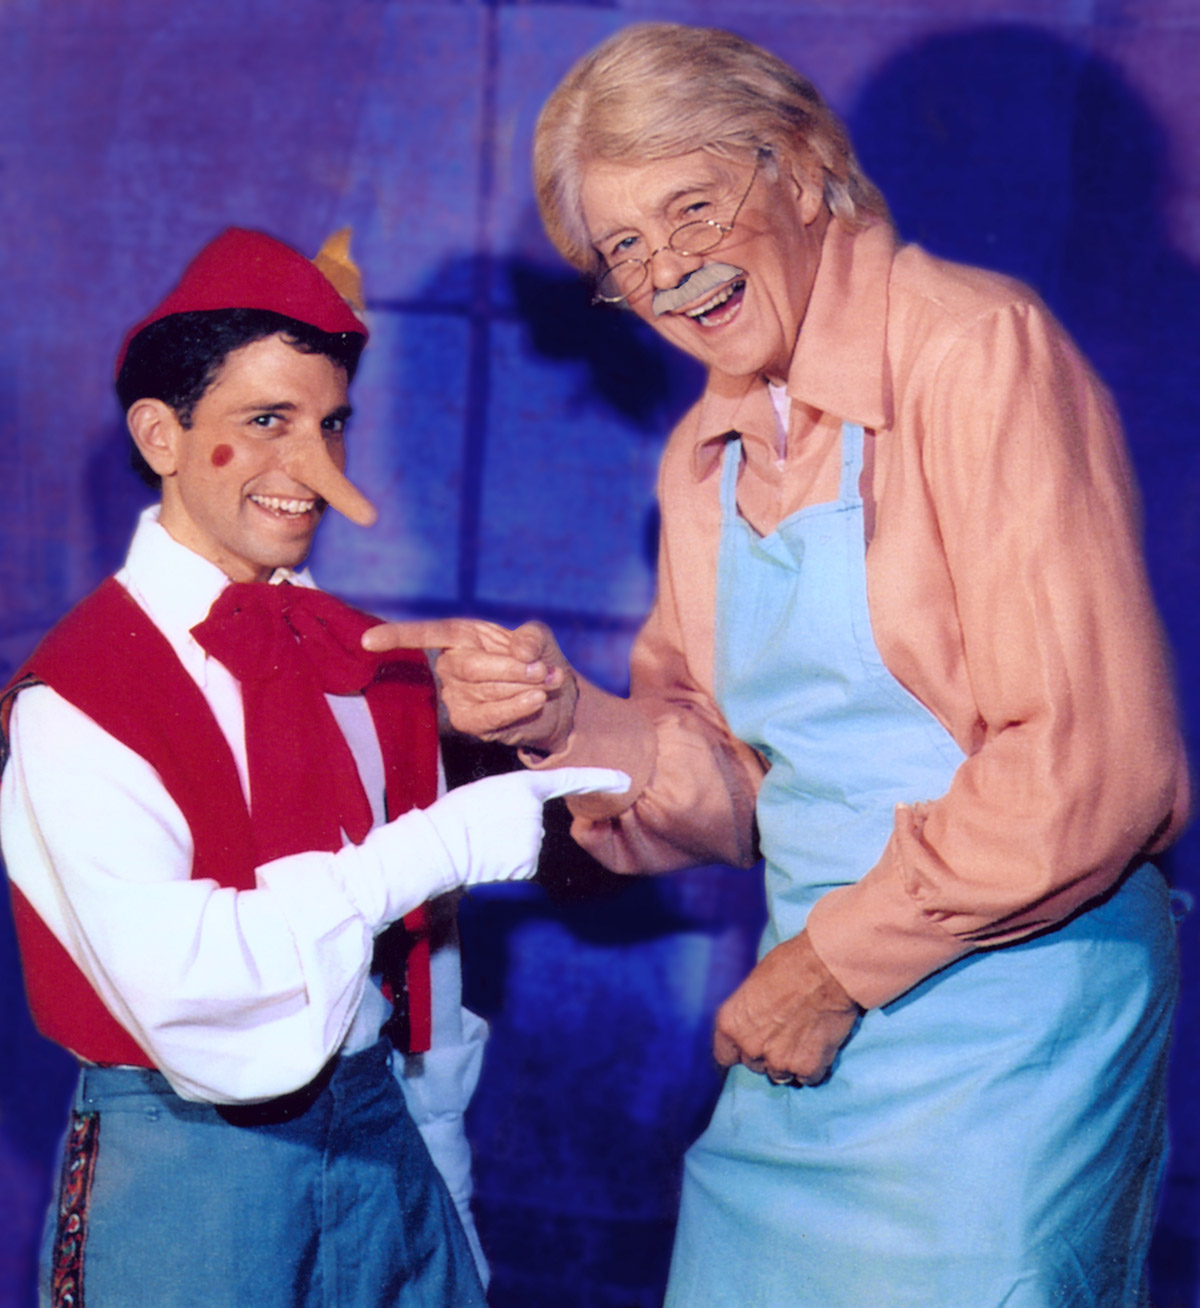 Pinocchio and Geppetto laugh together